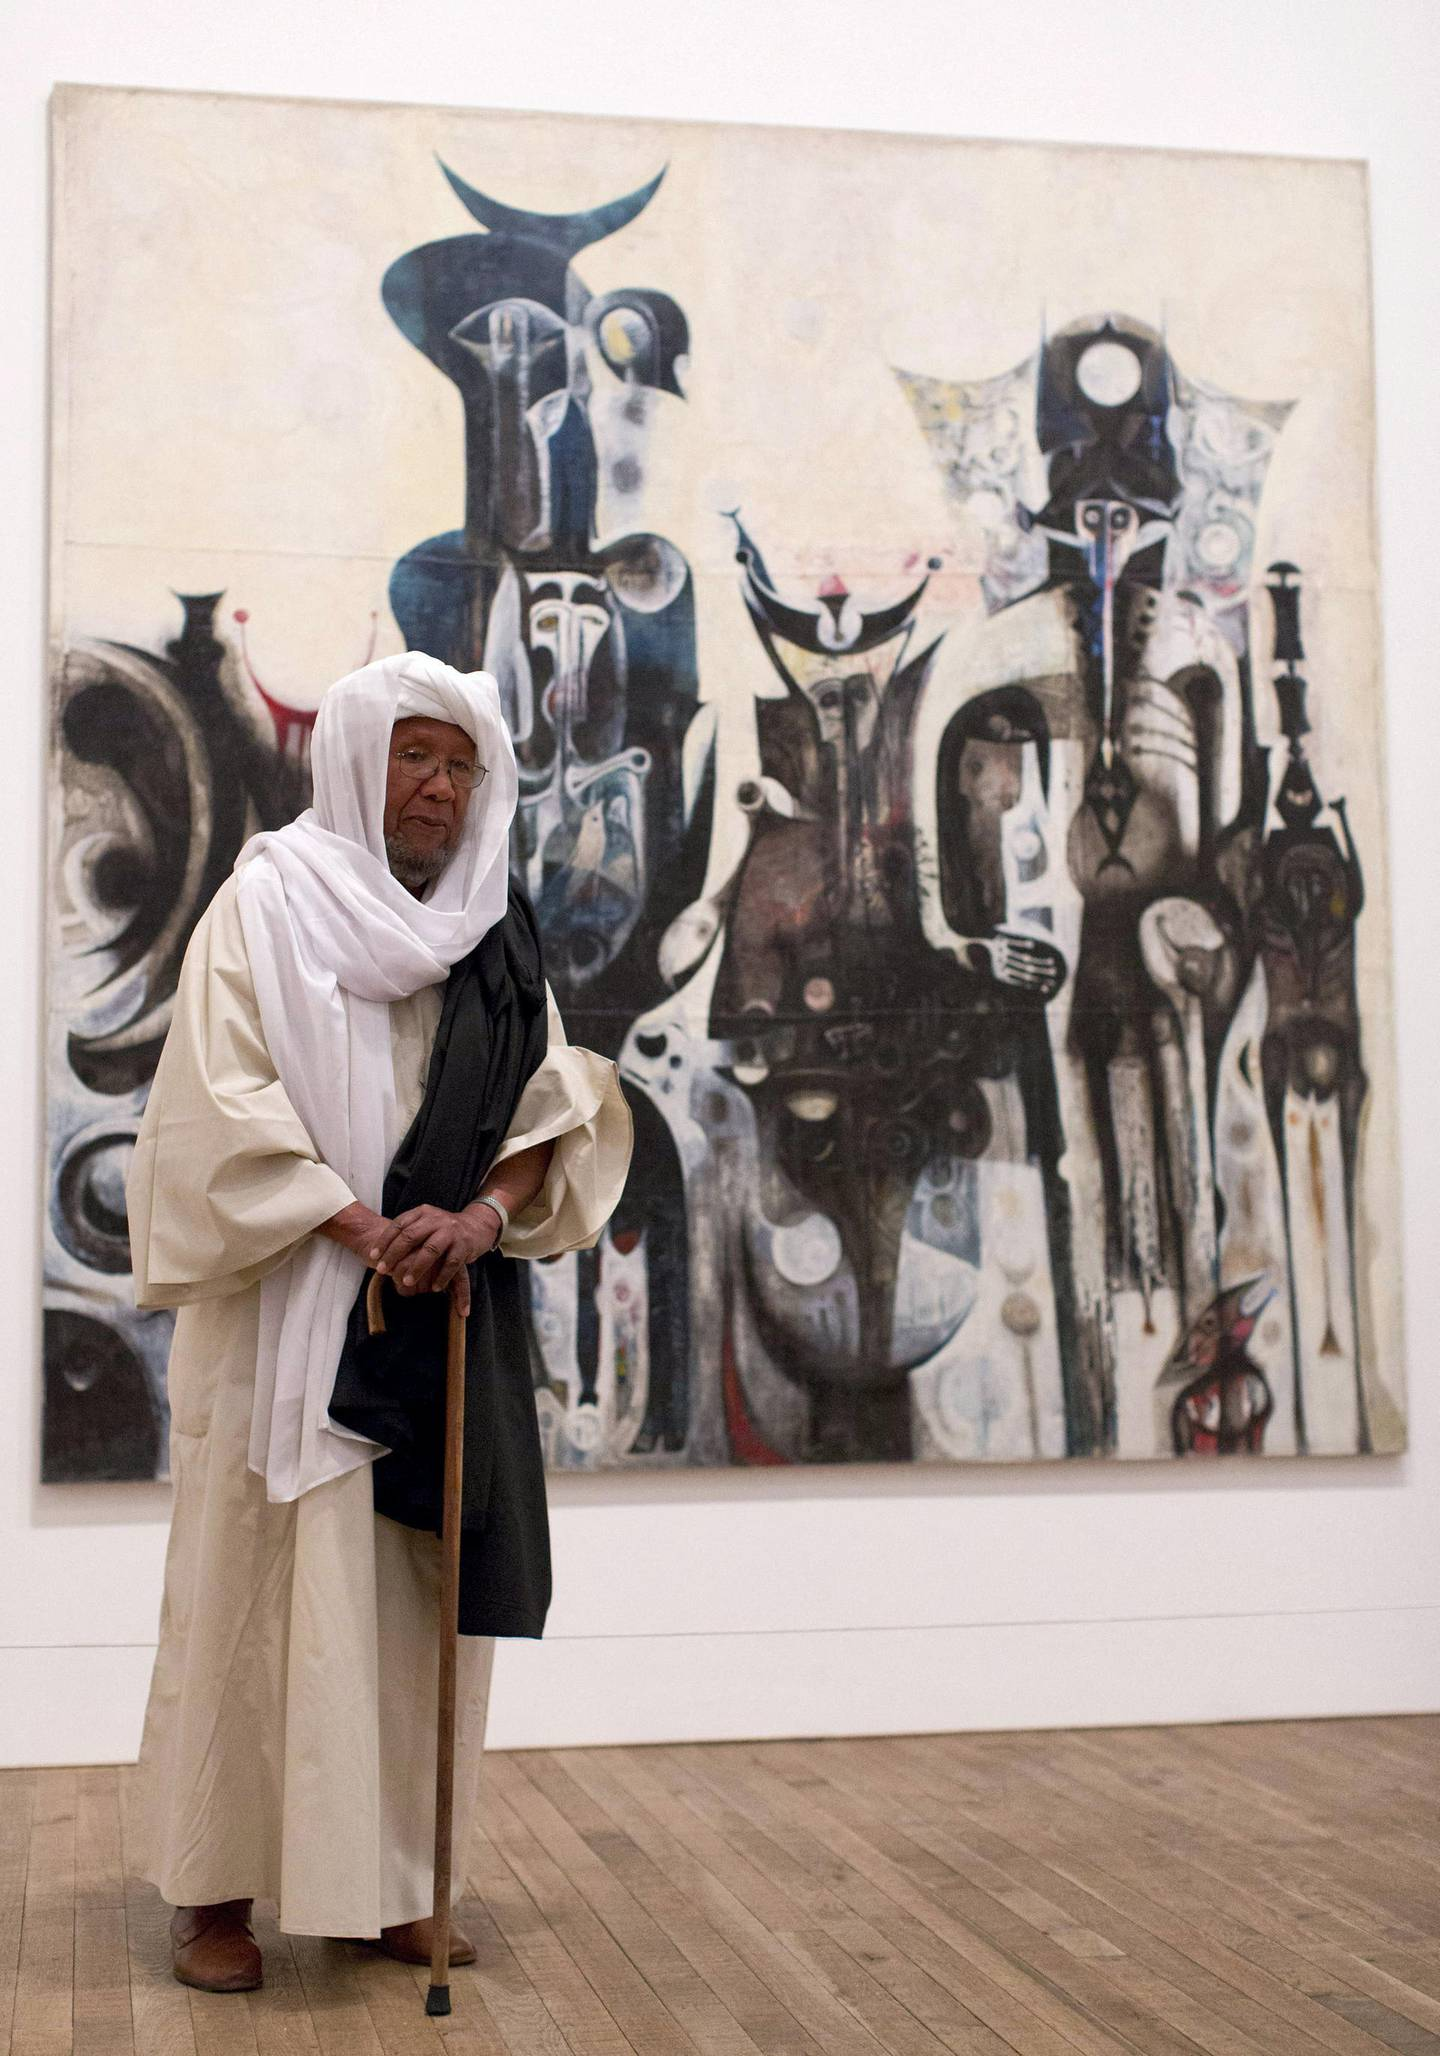 """Sudanese artist Ibrahim El-Salahi poses for a photograph in front of his painting entitled """"Reborn Sounds of Childhood Dreams"""" at the Tate Modern in London on July 1, 2013.  AFP PHOTO/JUSTIN TALLIS - """" RESTRICTED TO EDITORIAL USE, MANDATORY MENTION OF THE ARTIST UPON PUBLICATION, TO ILLUSTRATE THE EVENT AS SPECIFIED IN THE CAPTION """" (Photo by JUSTIN TALLIS / AFP)"""